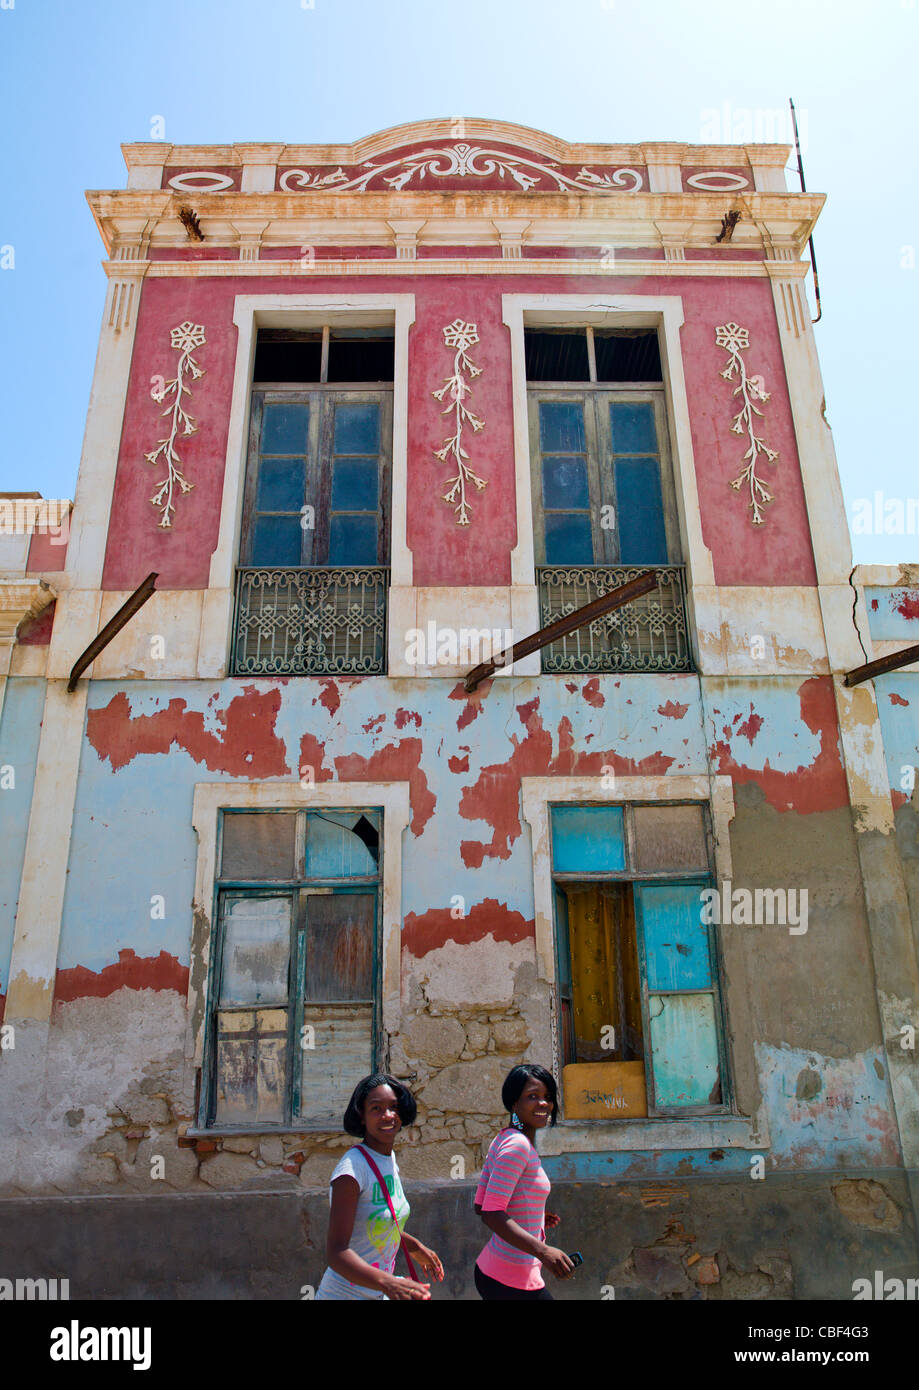 Girls In Front Of An Old Dilapidated Building In Namibe Town, Angola - Stock Image